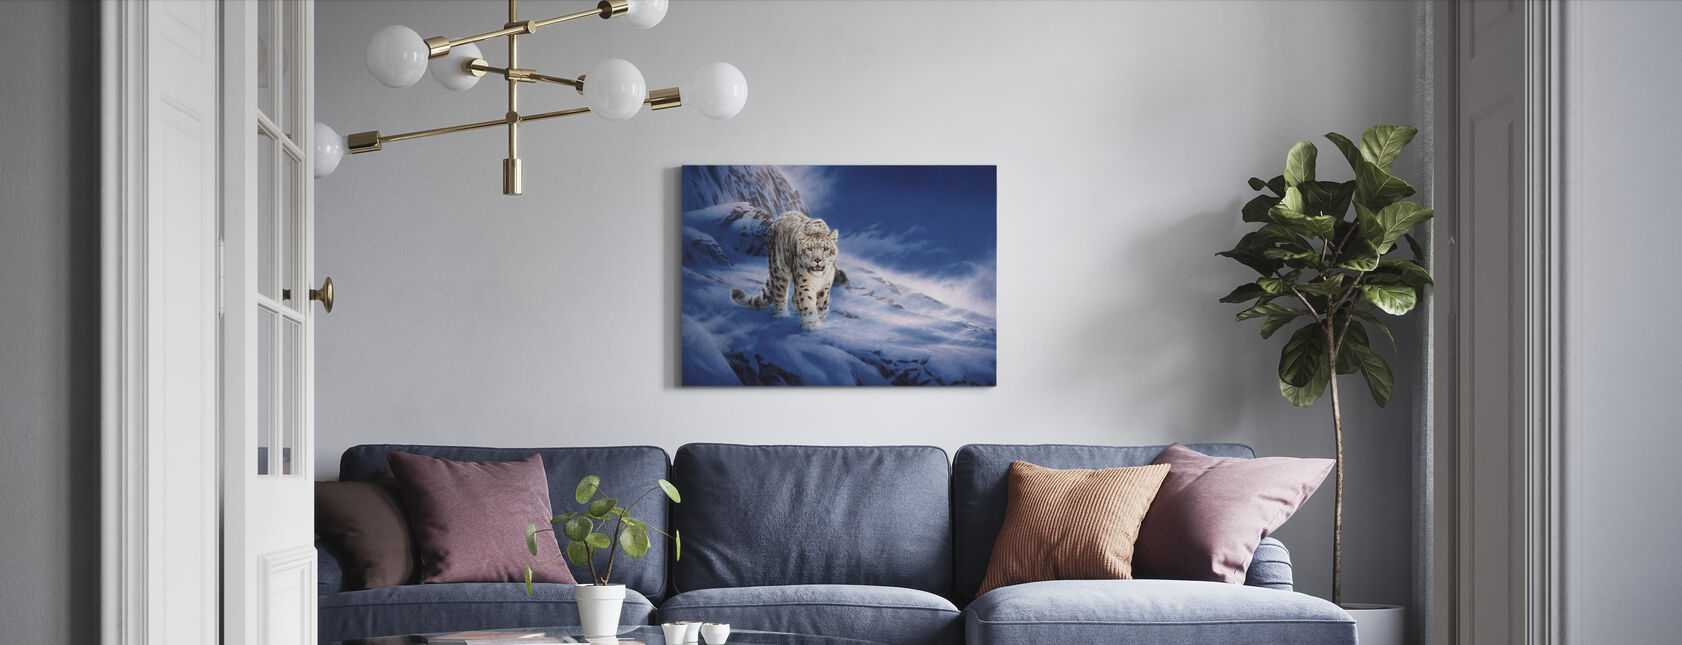 Snow Leopard - Canvas print - Living Room